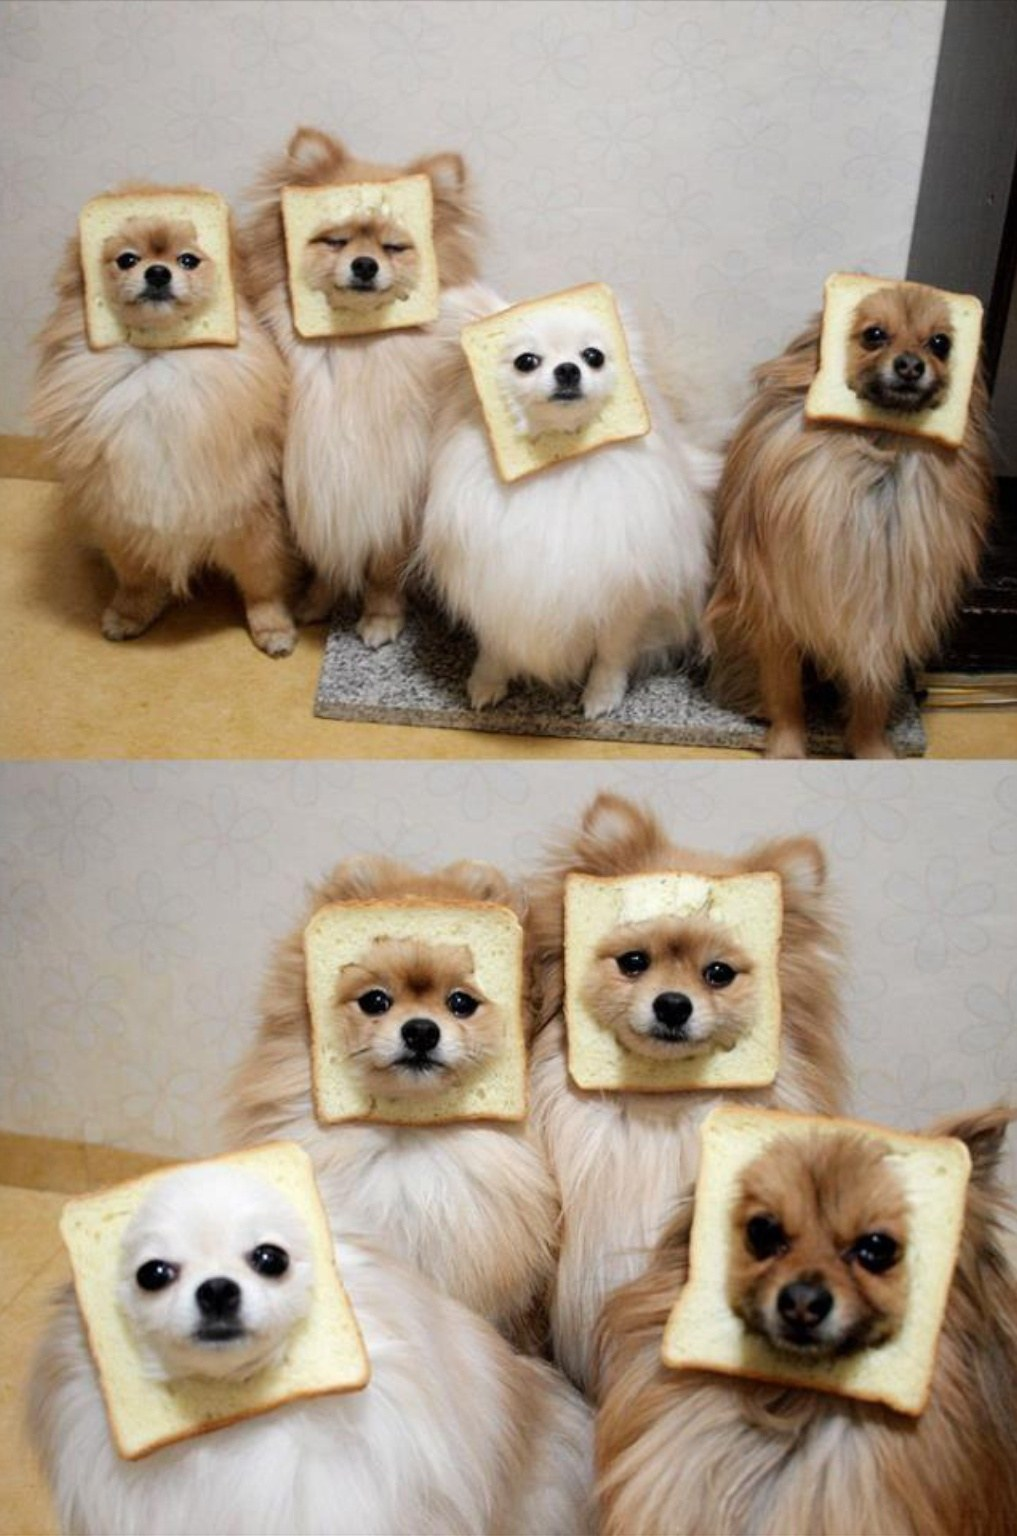 Particular Hindi Adults Ny Dog Jokes Pomeranian Bread Squad Puppy Gangs We Want To Join Right Now Dog People By Ny Dog Jokes bark post Funny Dog Jokes